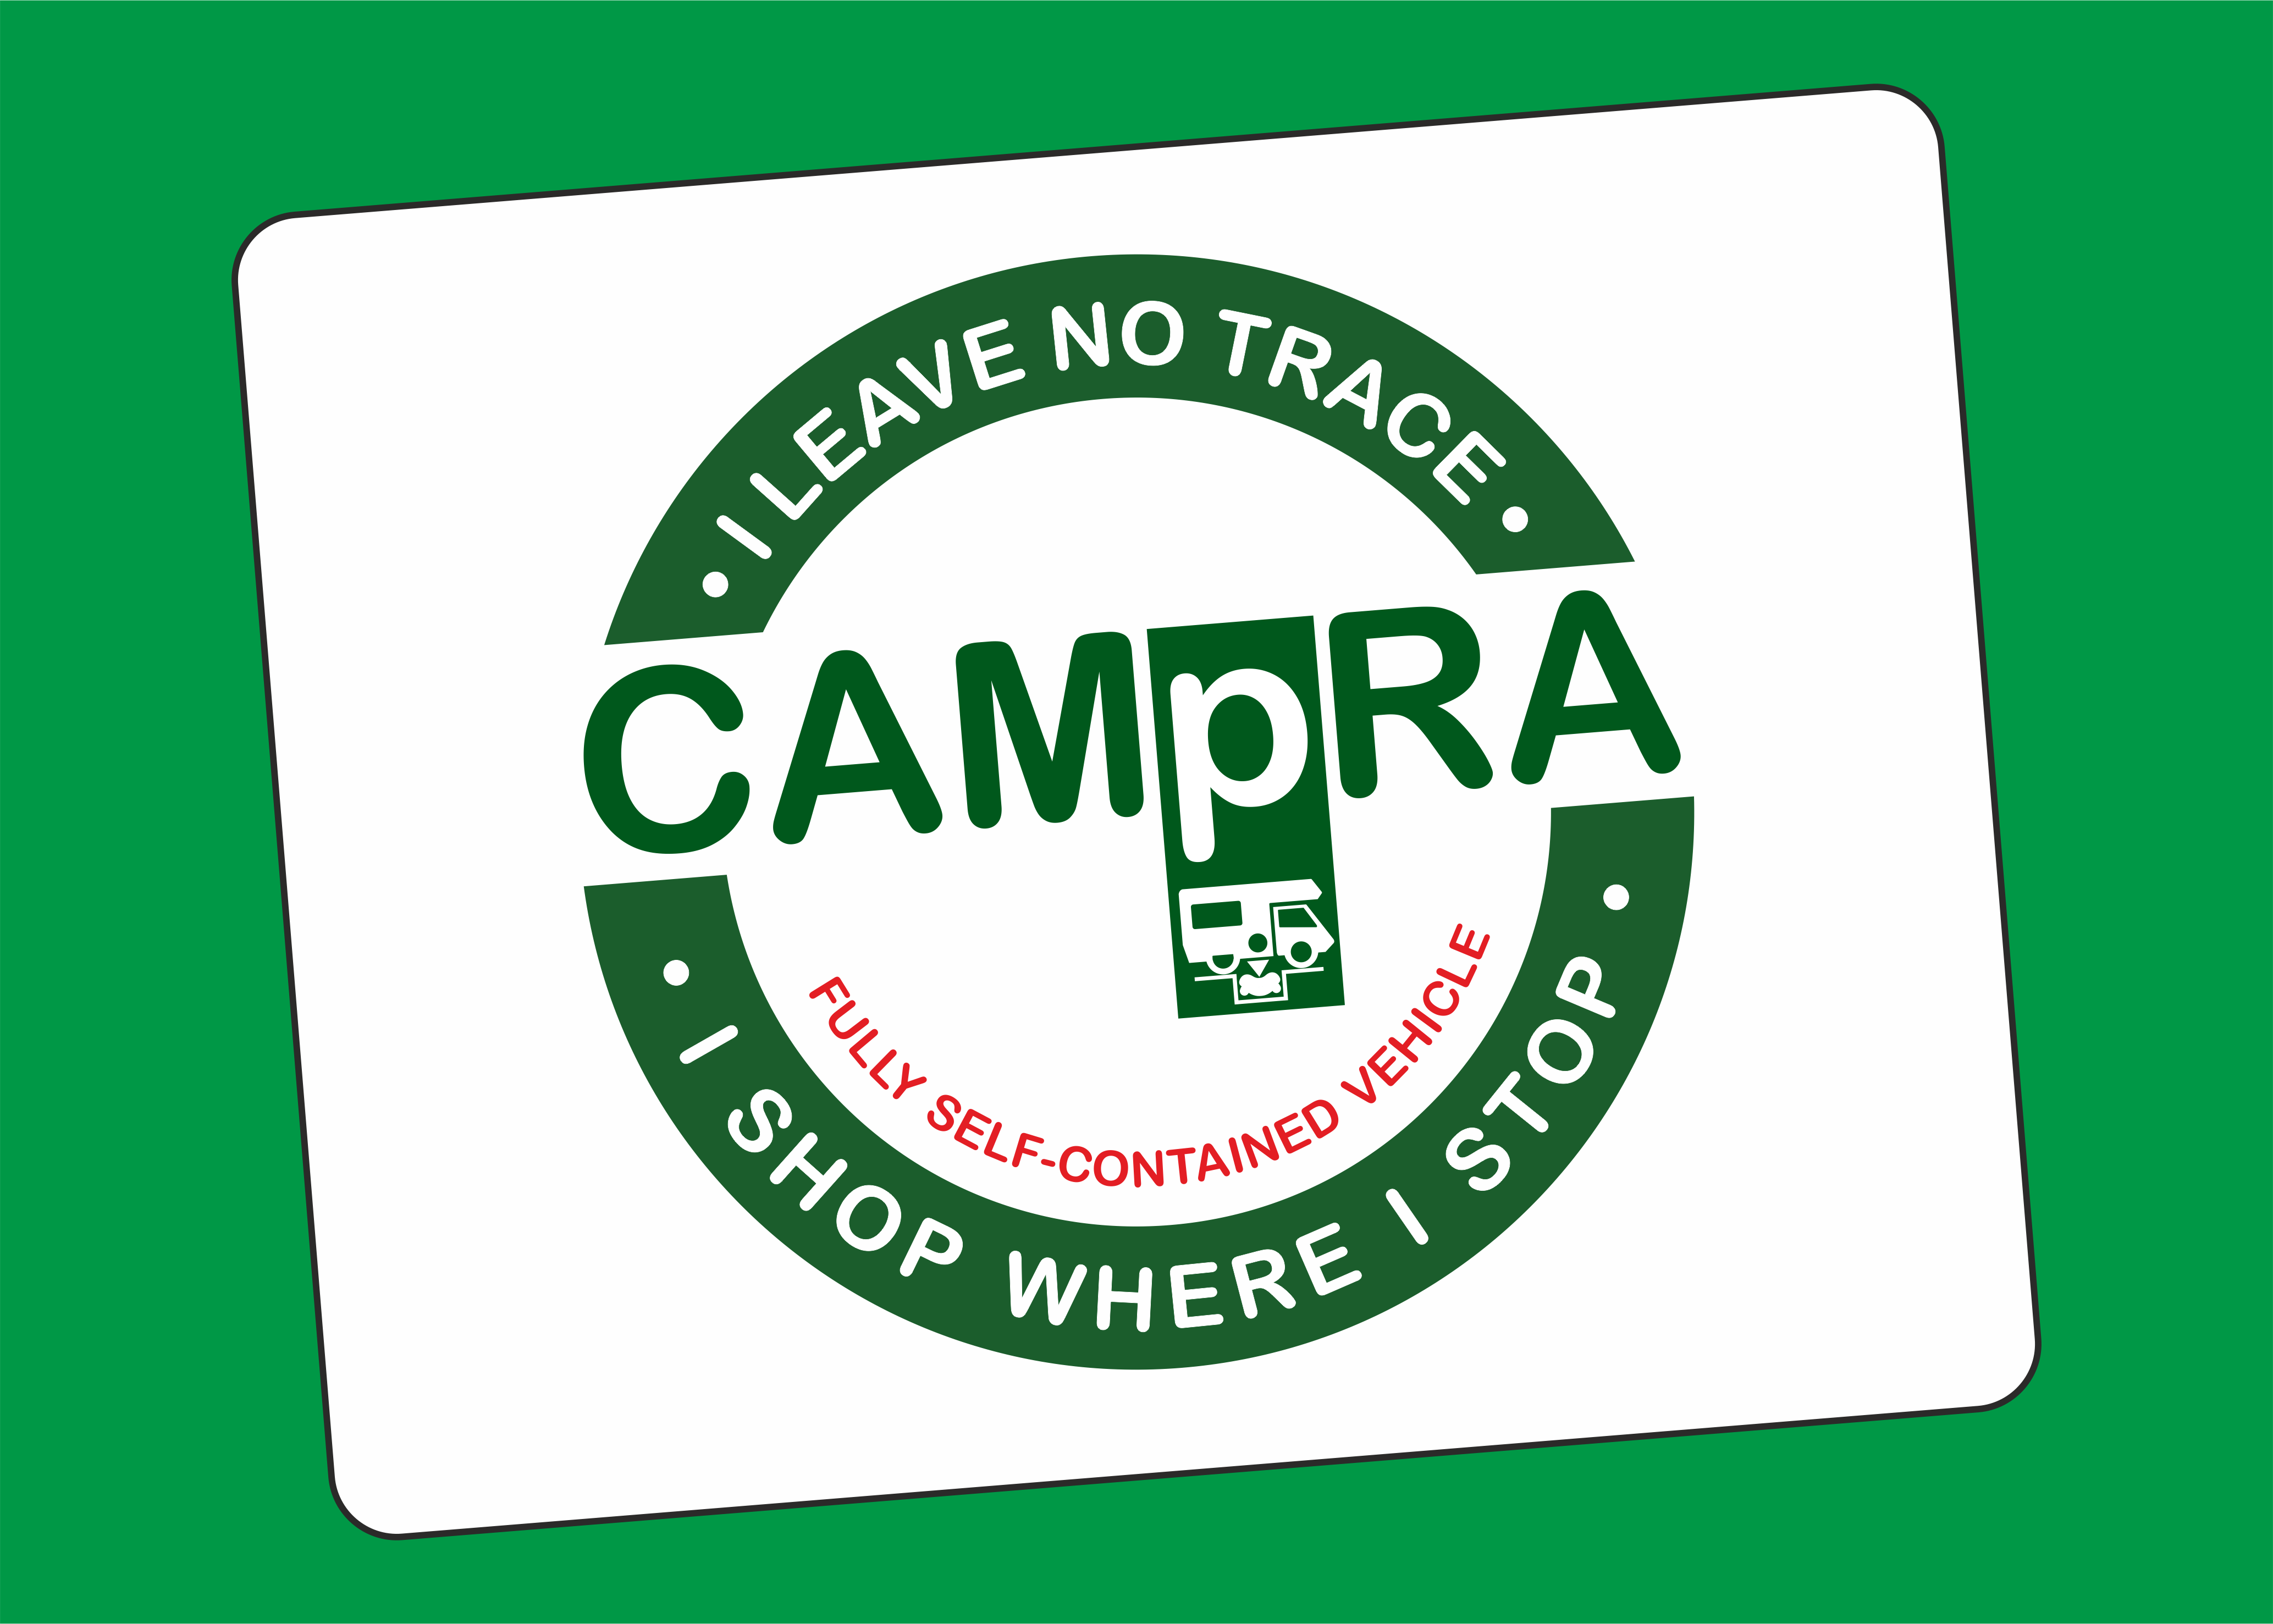 CAMpRA Place Mat from 59 Degrees North